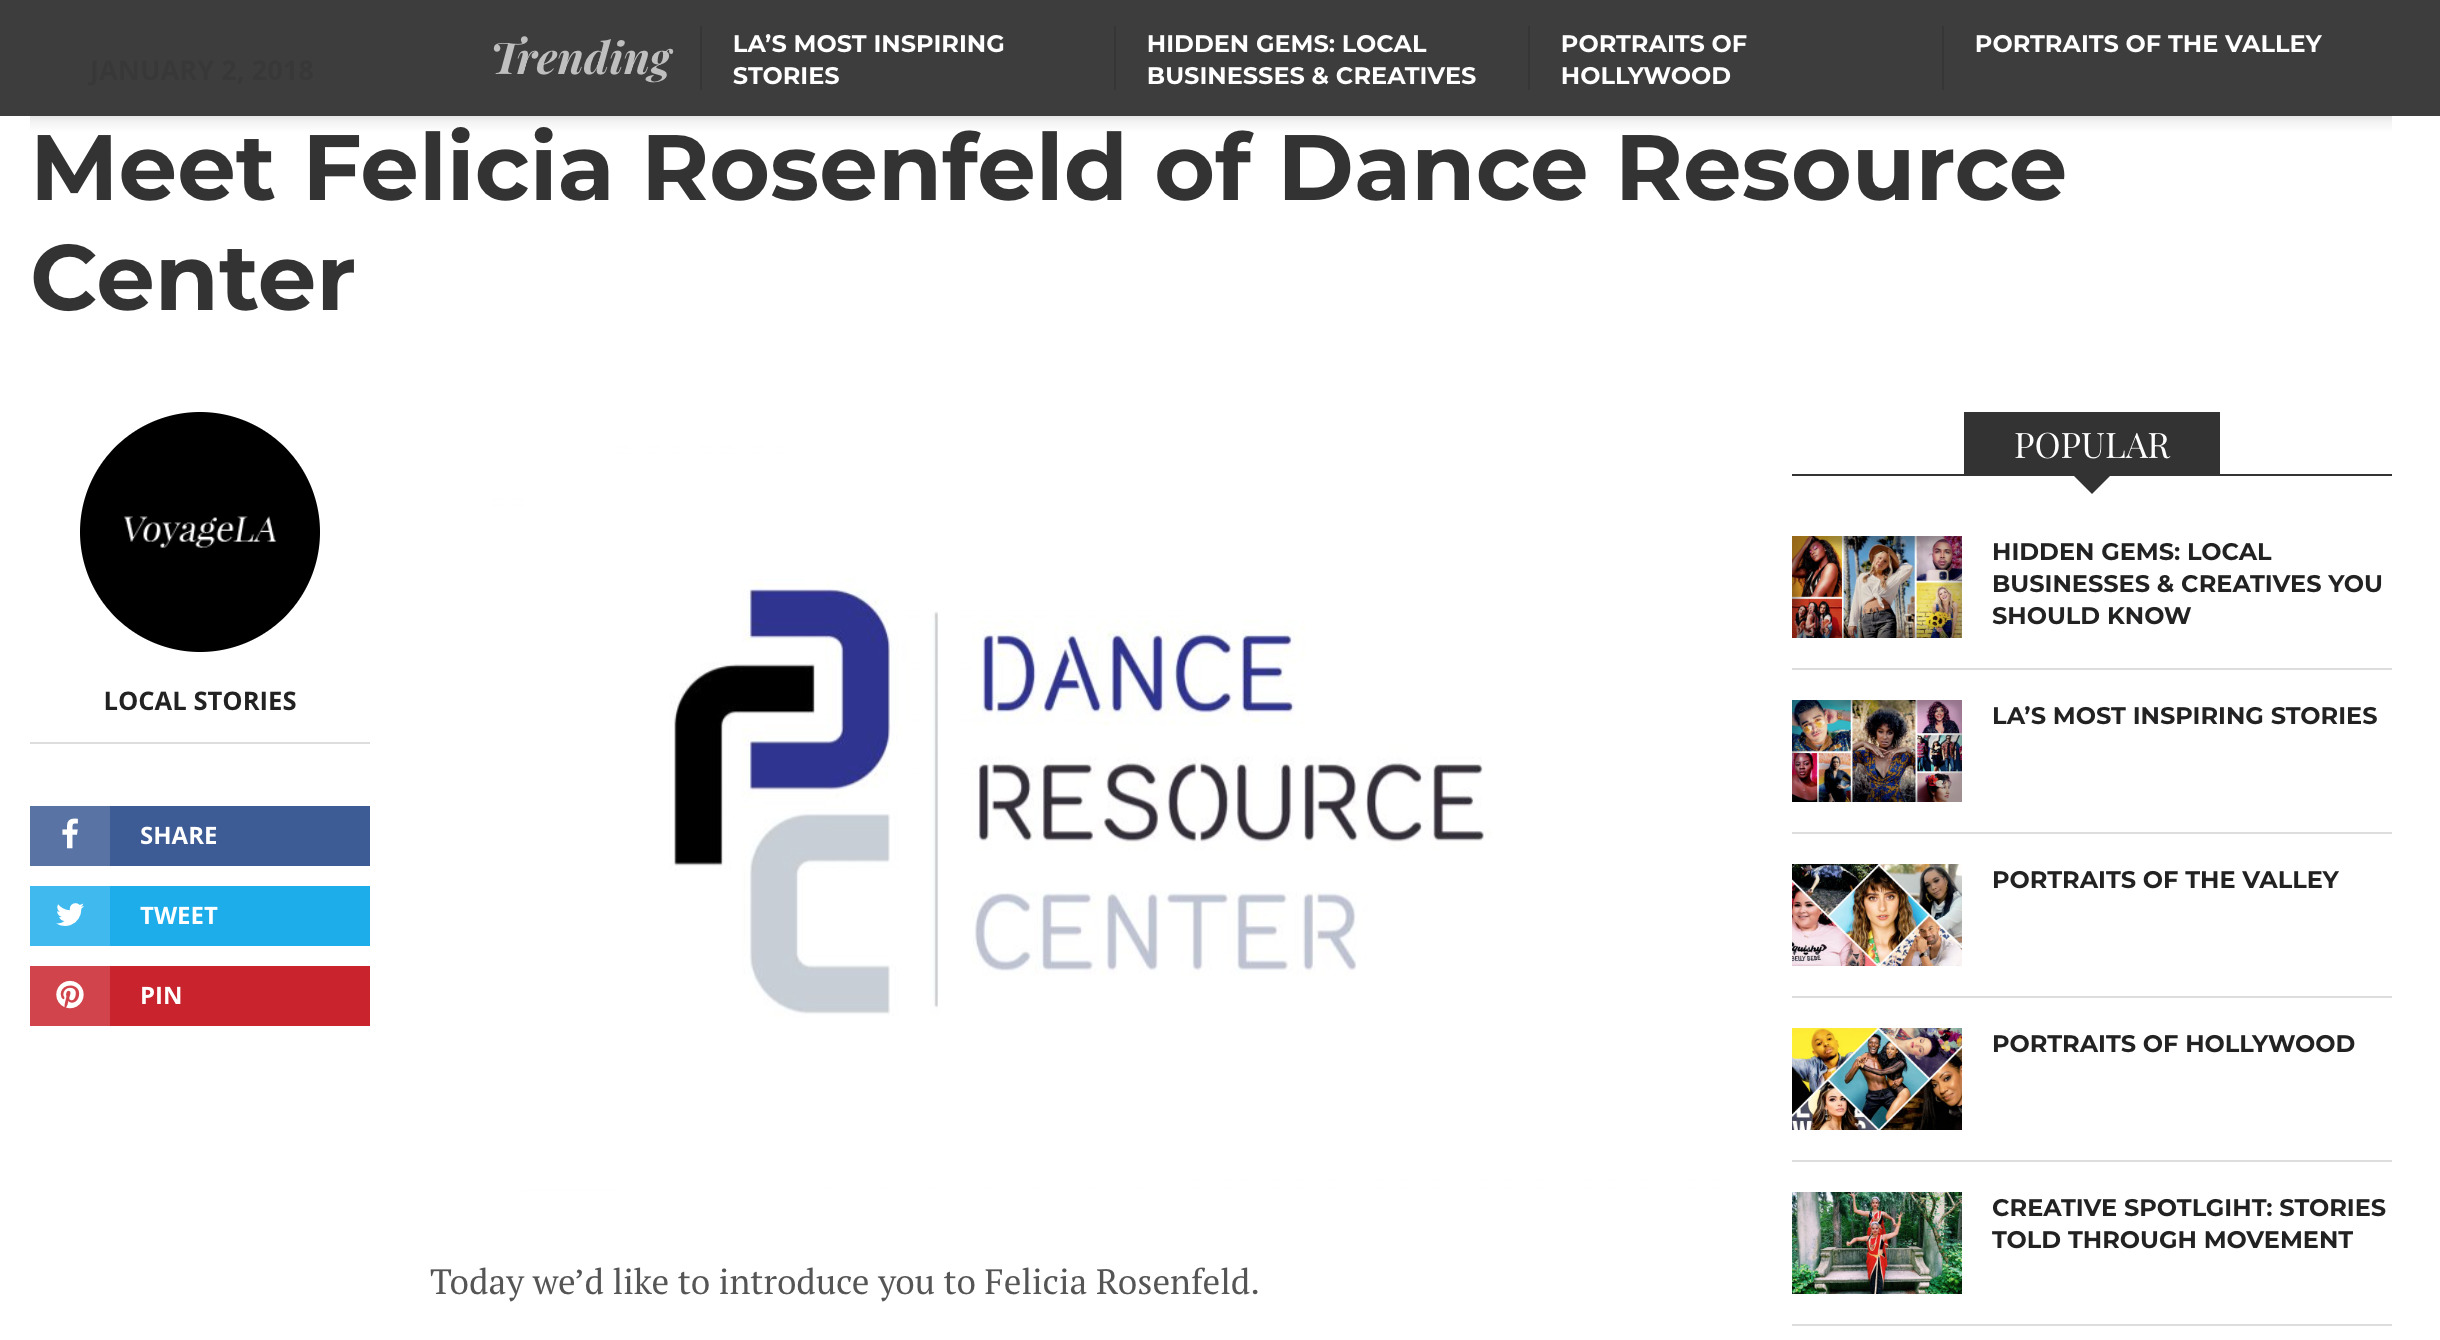 Voyage LA article about Felicia Rosenfeld of the Dance Resource Center.